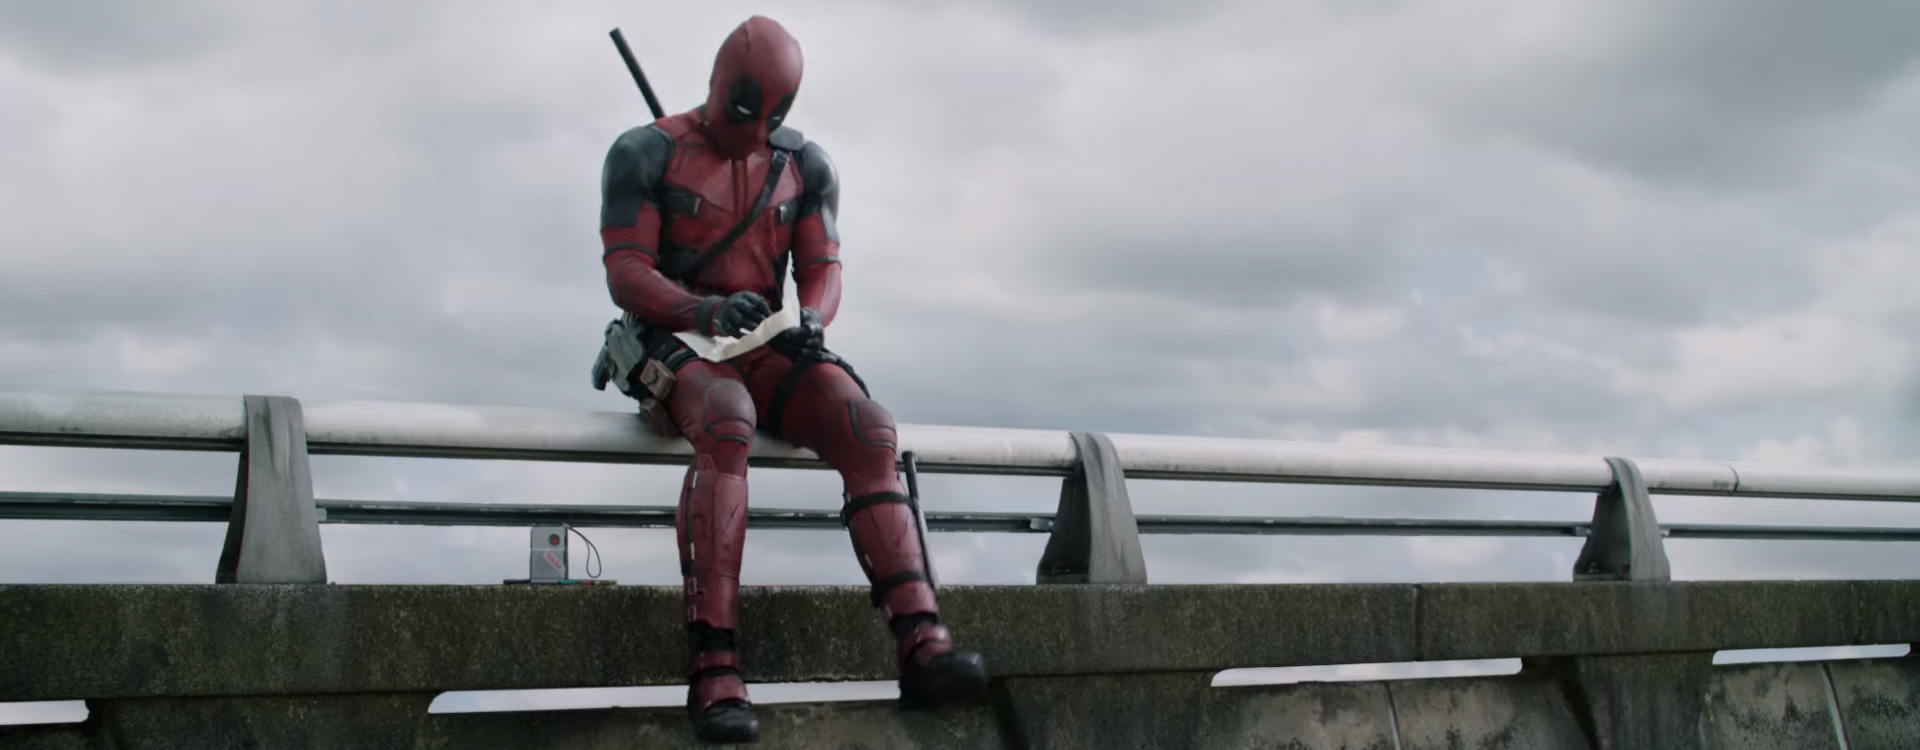 Deadpool. Image Credit: 20th Century Fox.